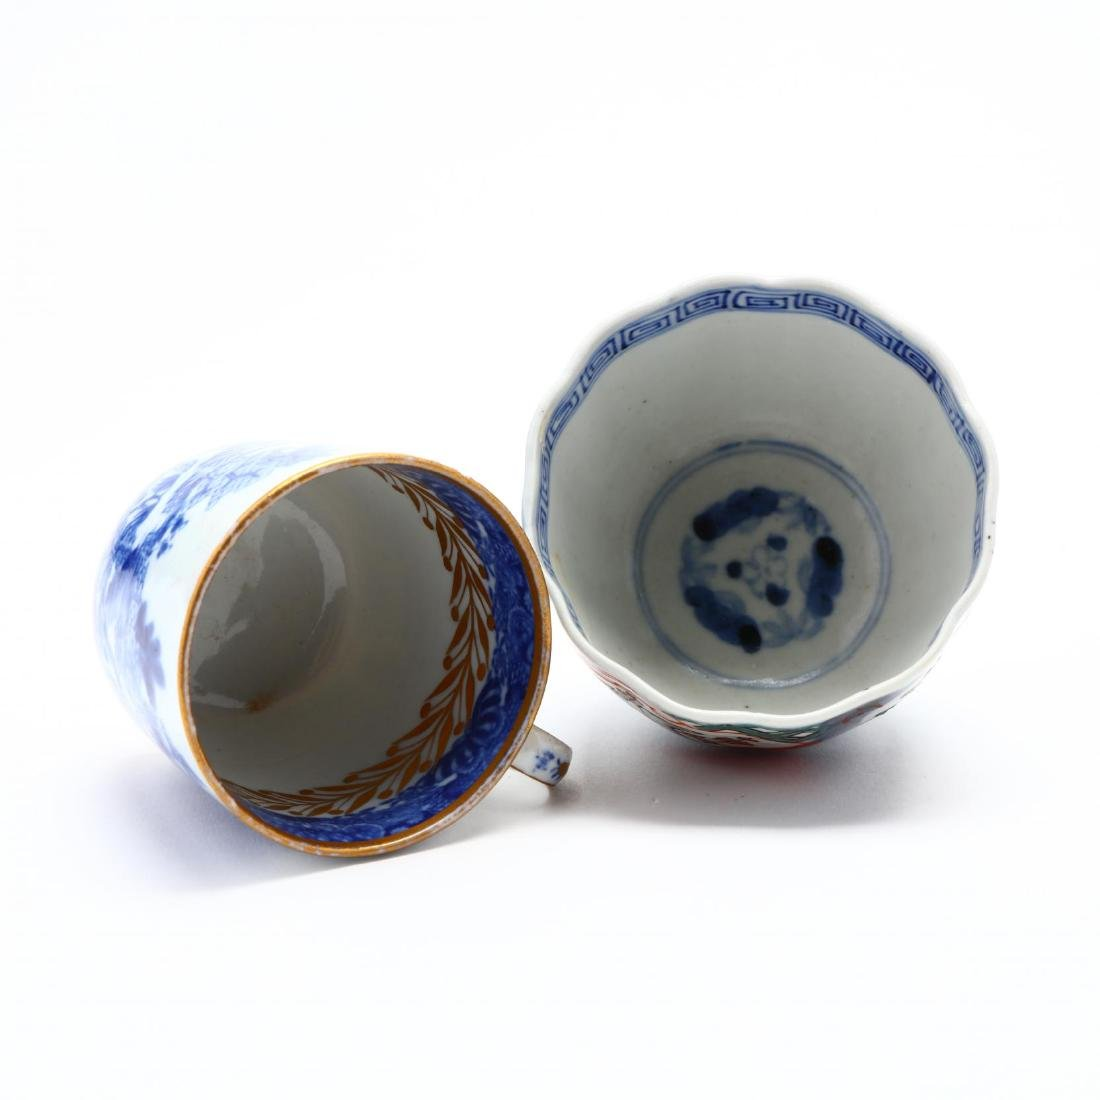 A Large Chinese Charger and Decorative Porcelain Items - 10